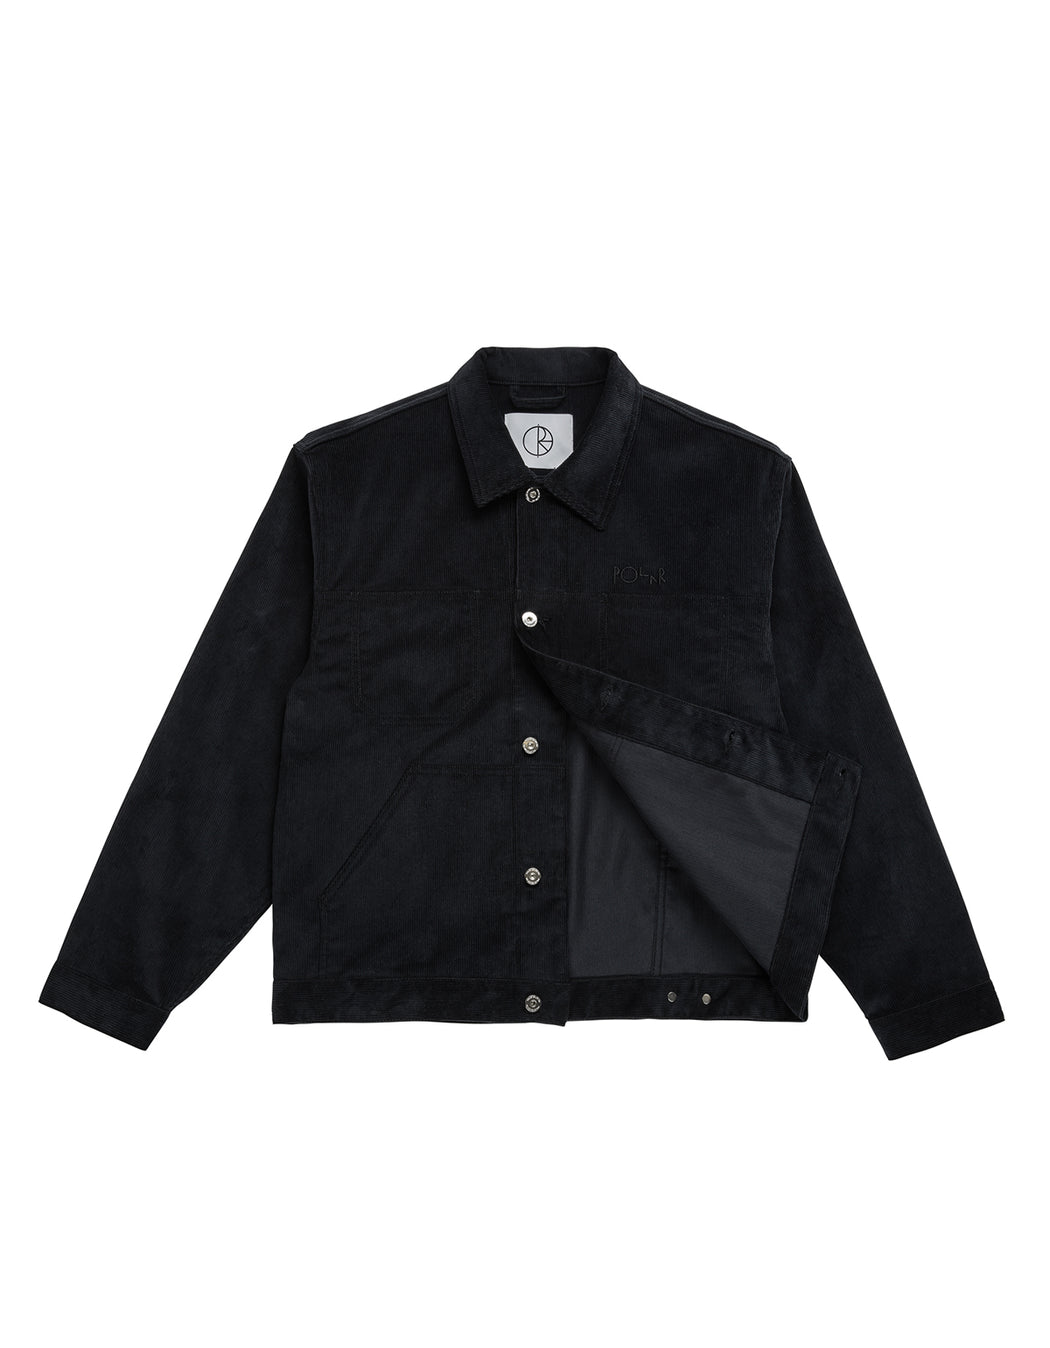 Polar Cord Jacket Black